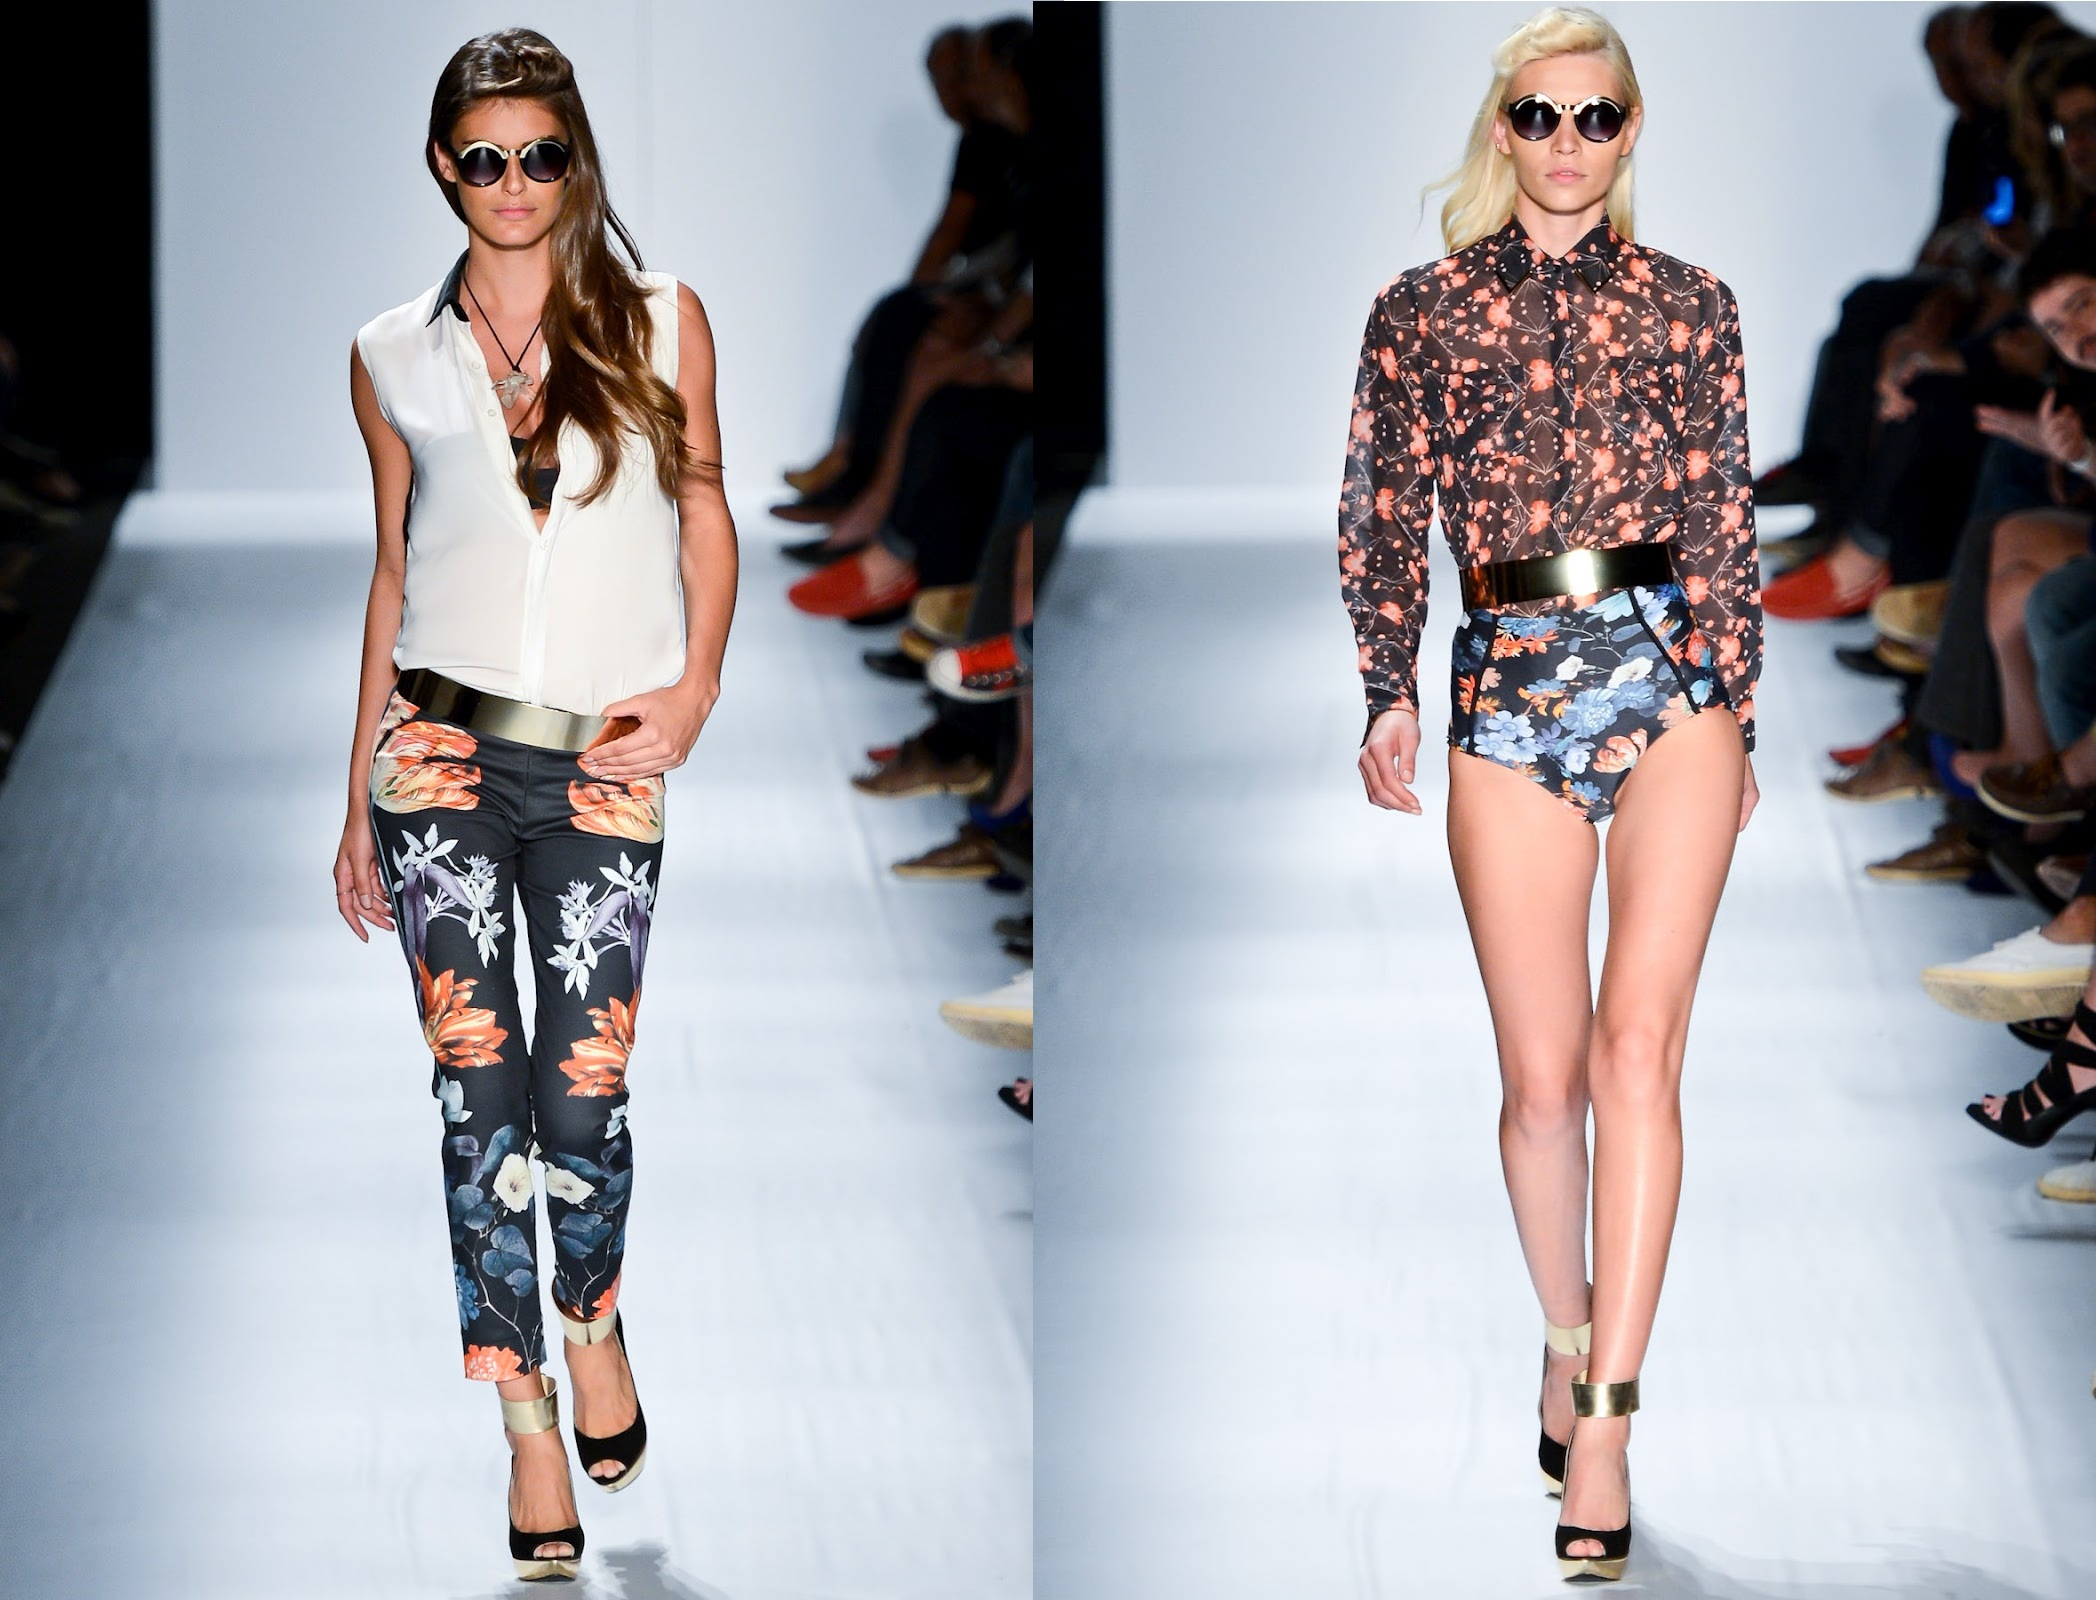 Auslander SS 2013 Rio Fashion Week